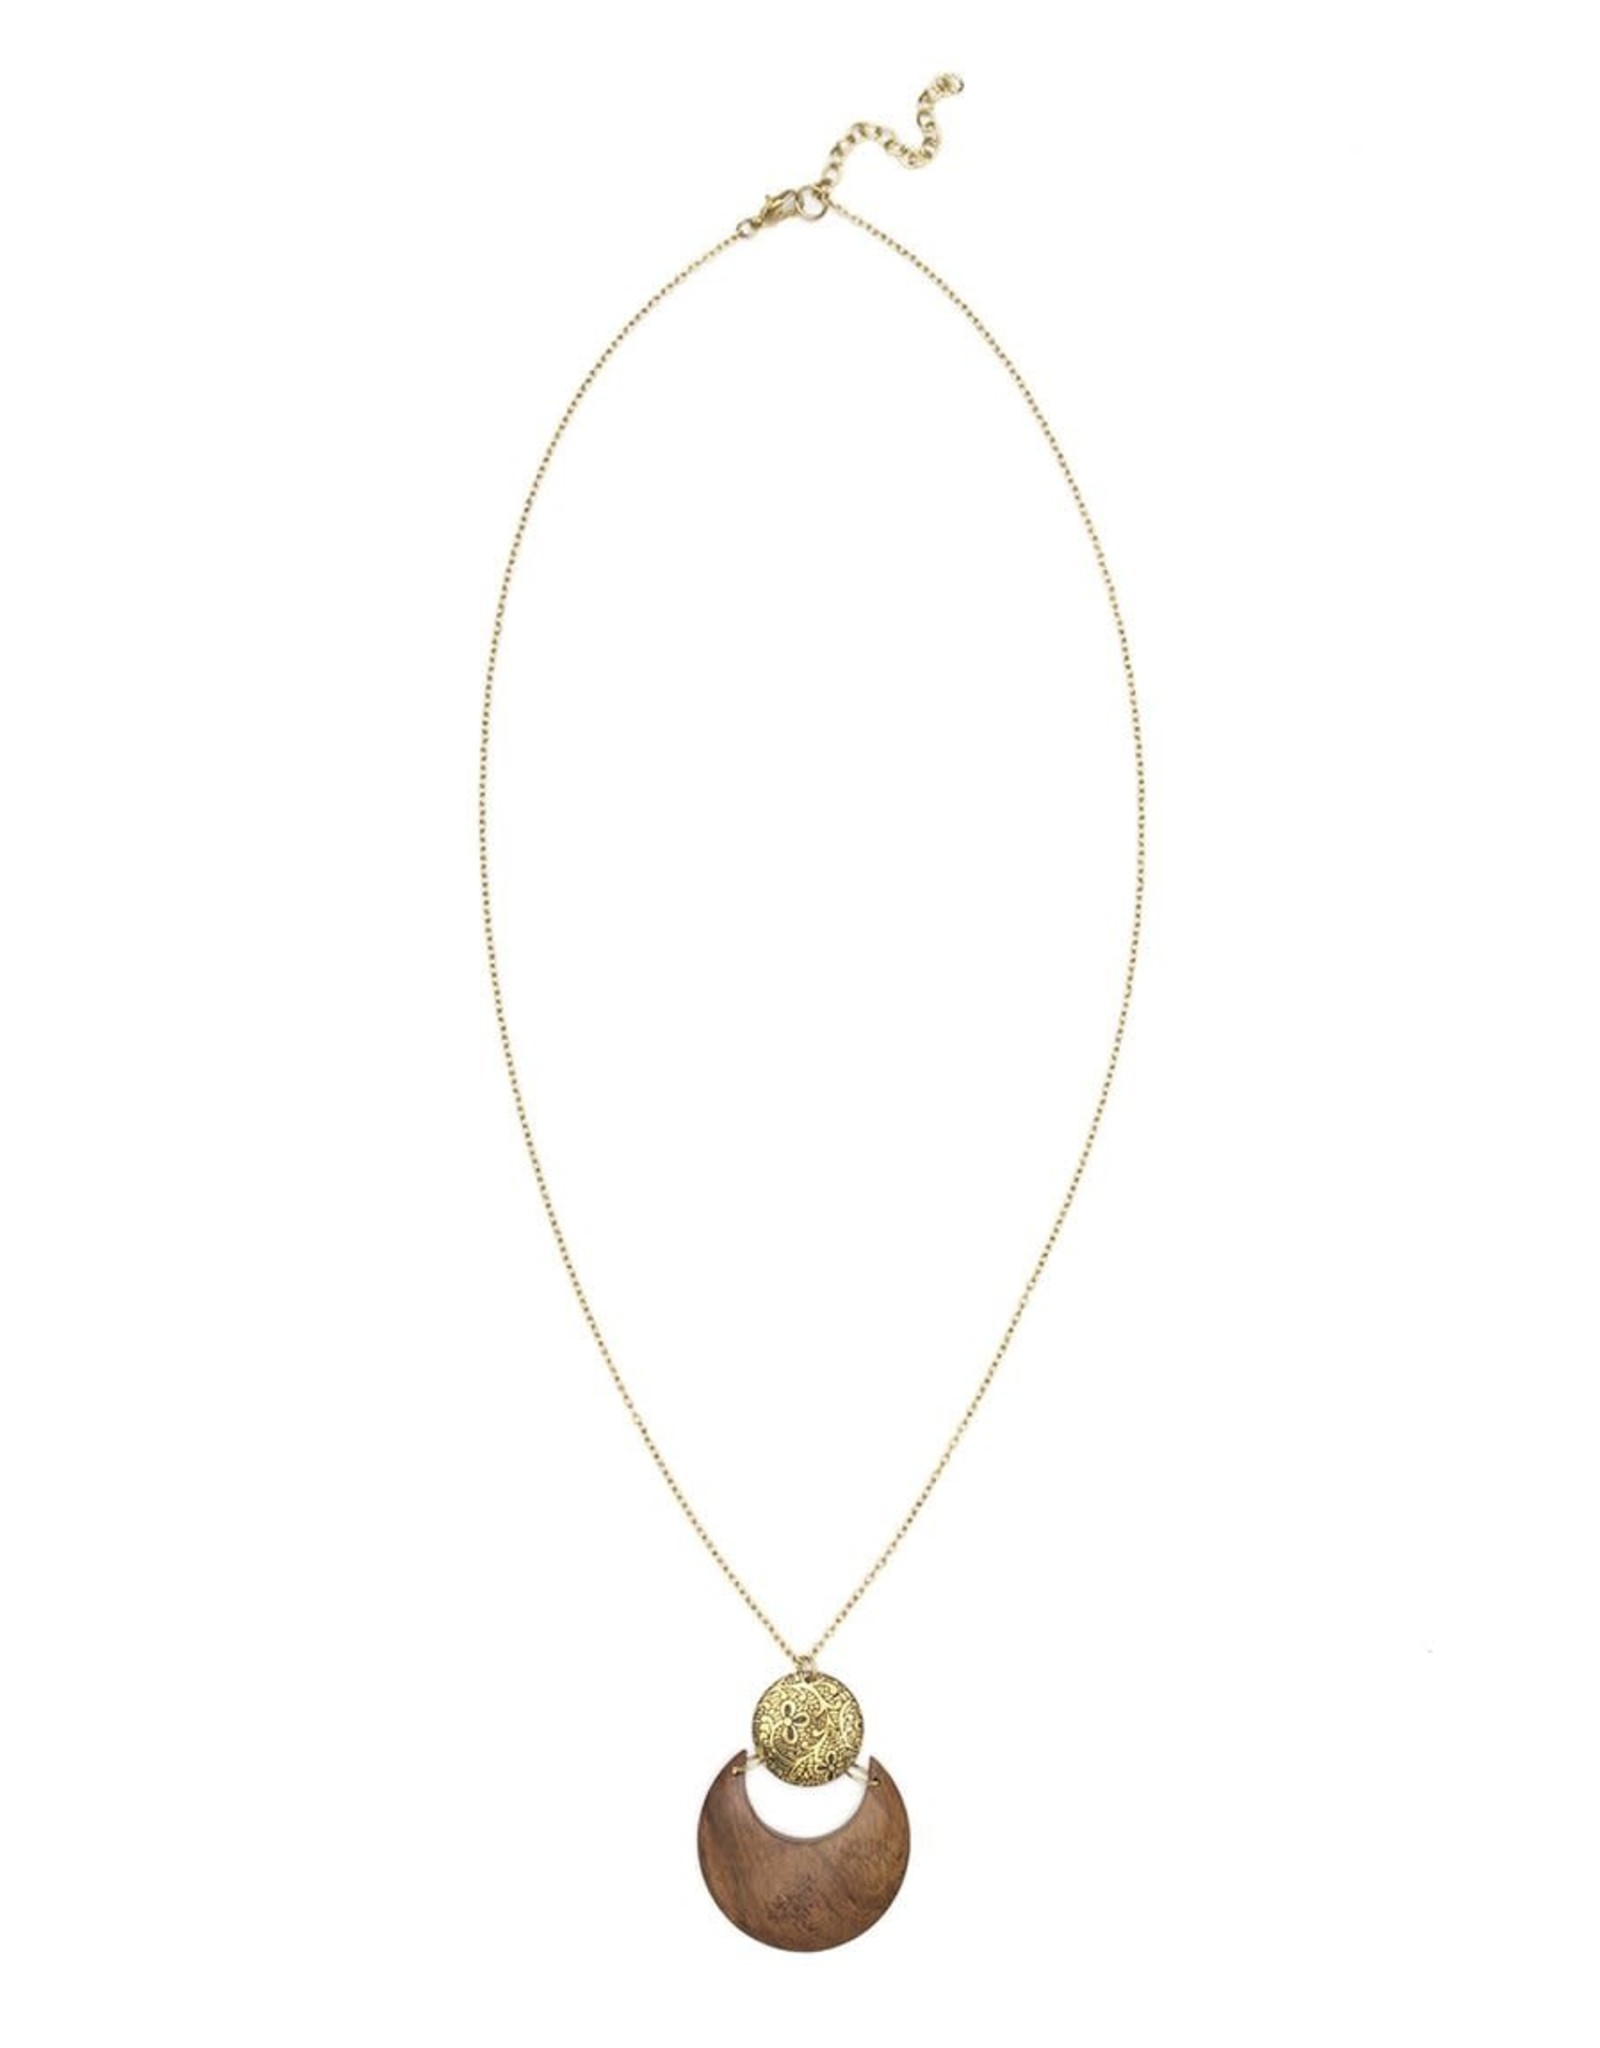 Matr Boomie Earth and Fire necklace- lunar